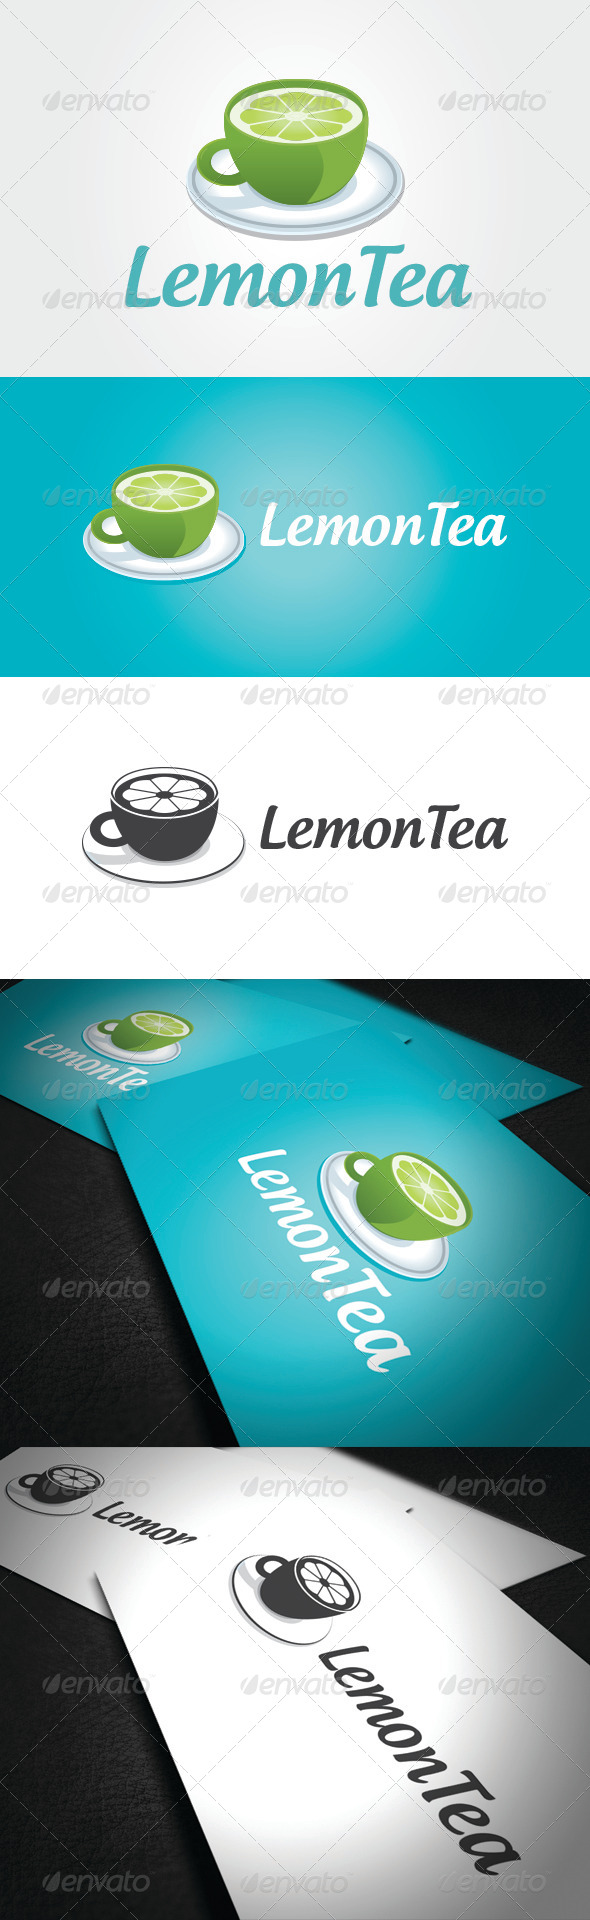 Lemon Tea Logo Template - Vector Abstract